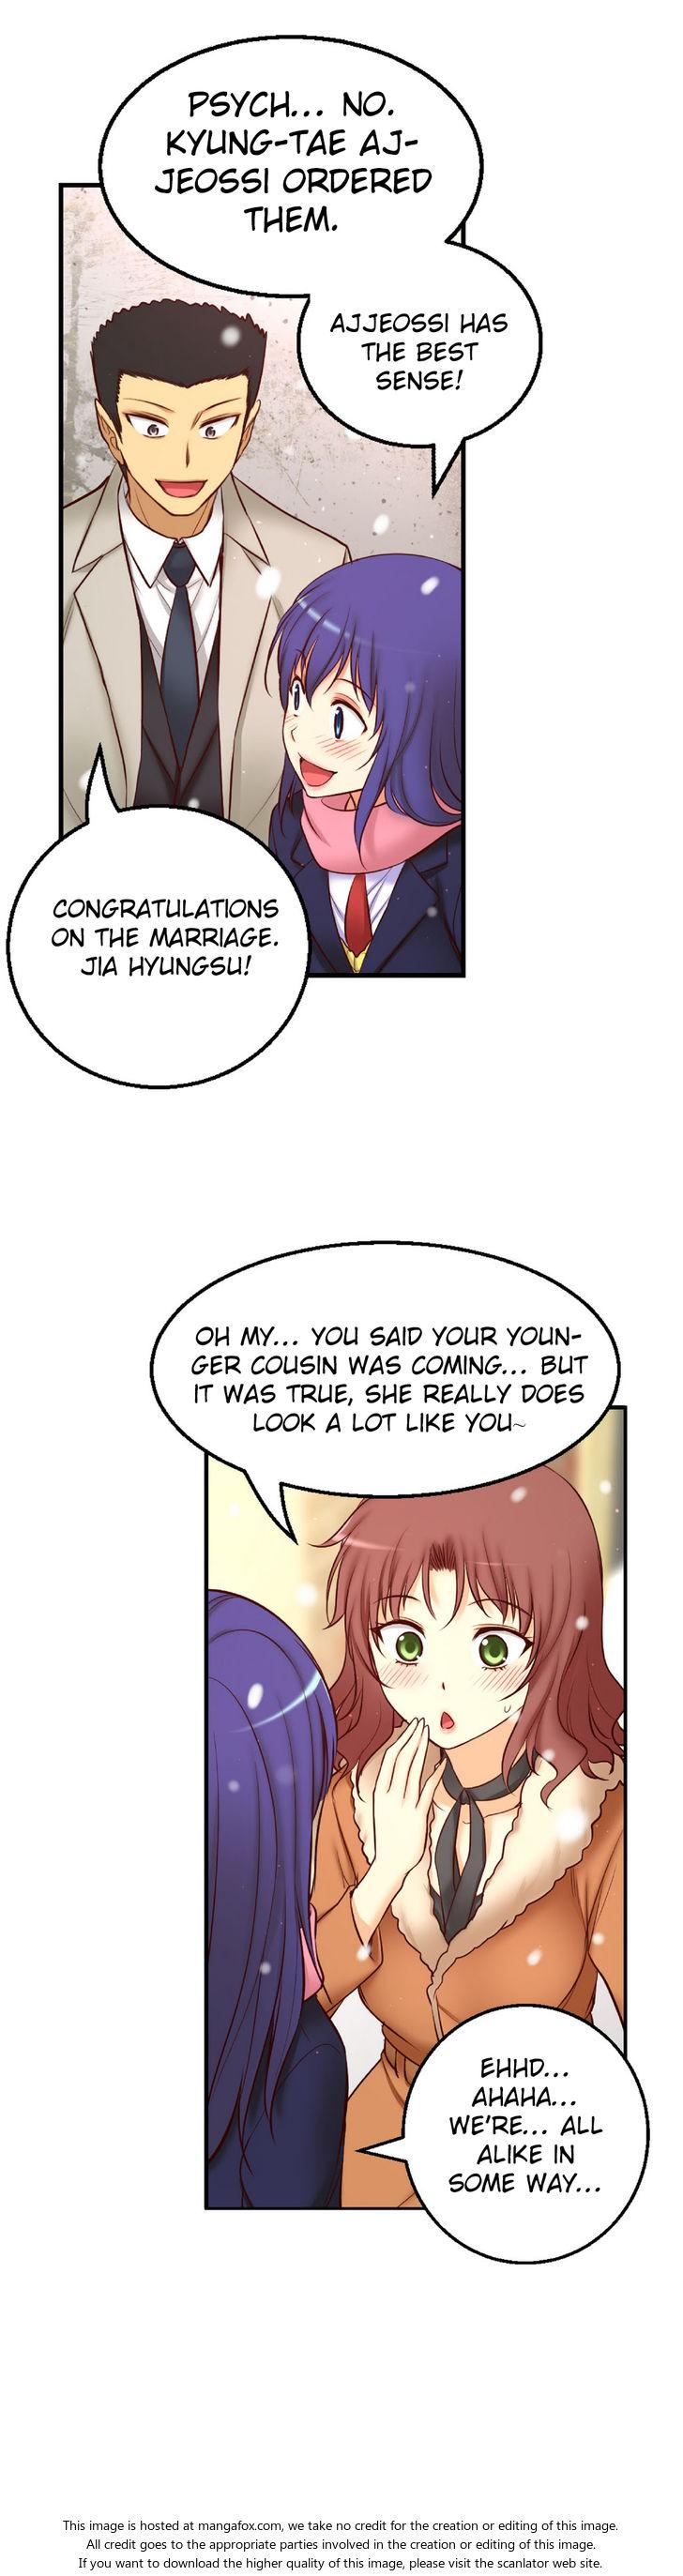 [Donggul Gom] She is Young (English) Part 1/2 1920